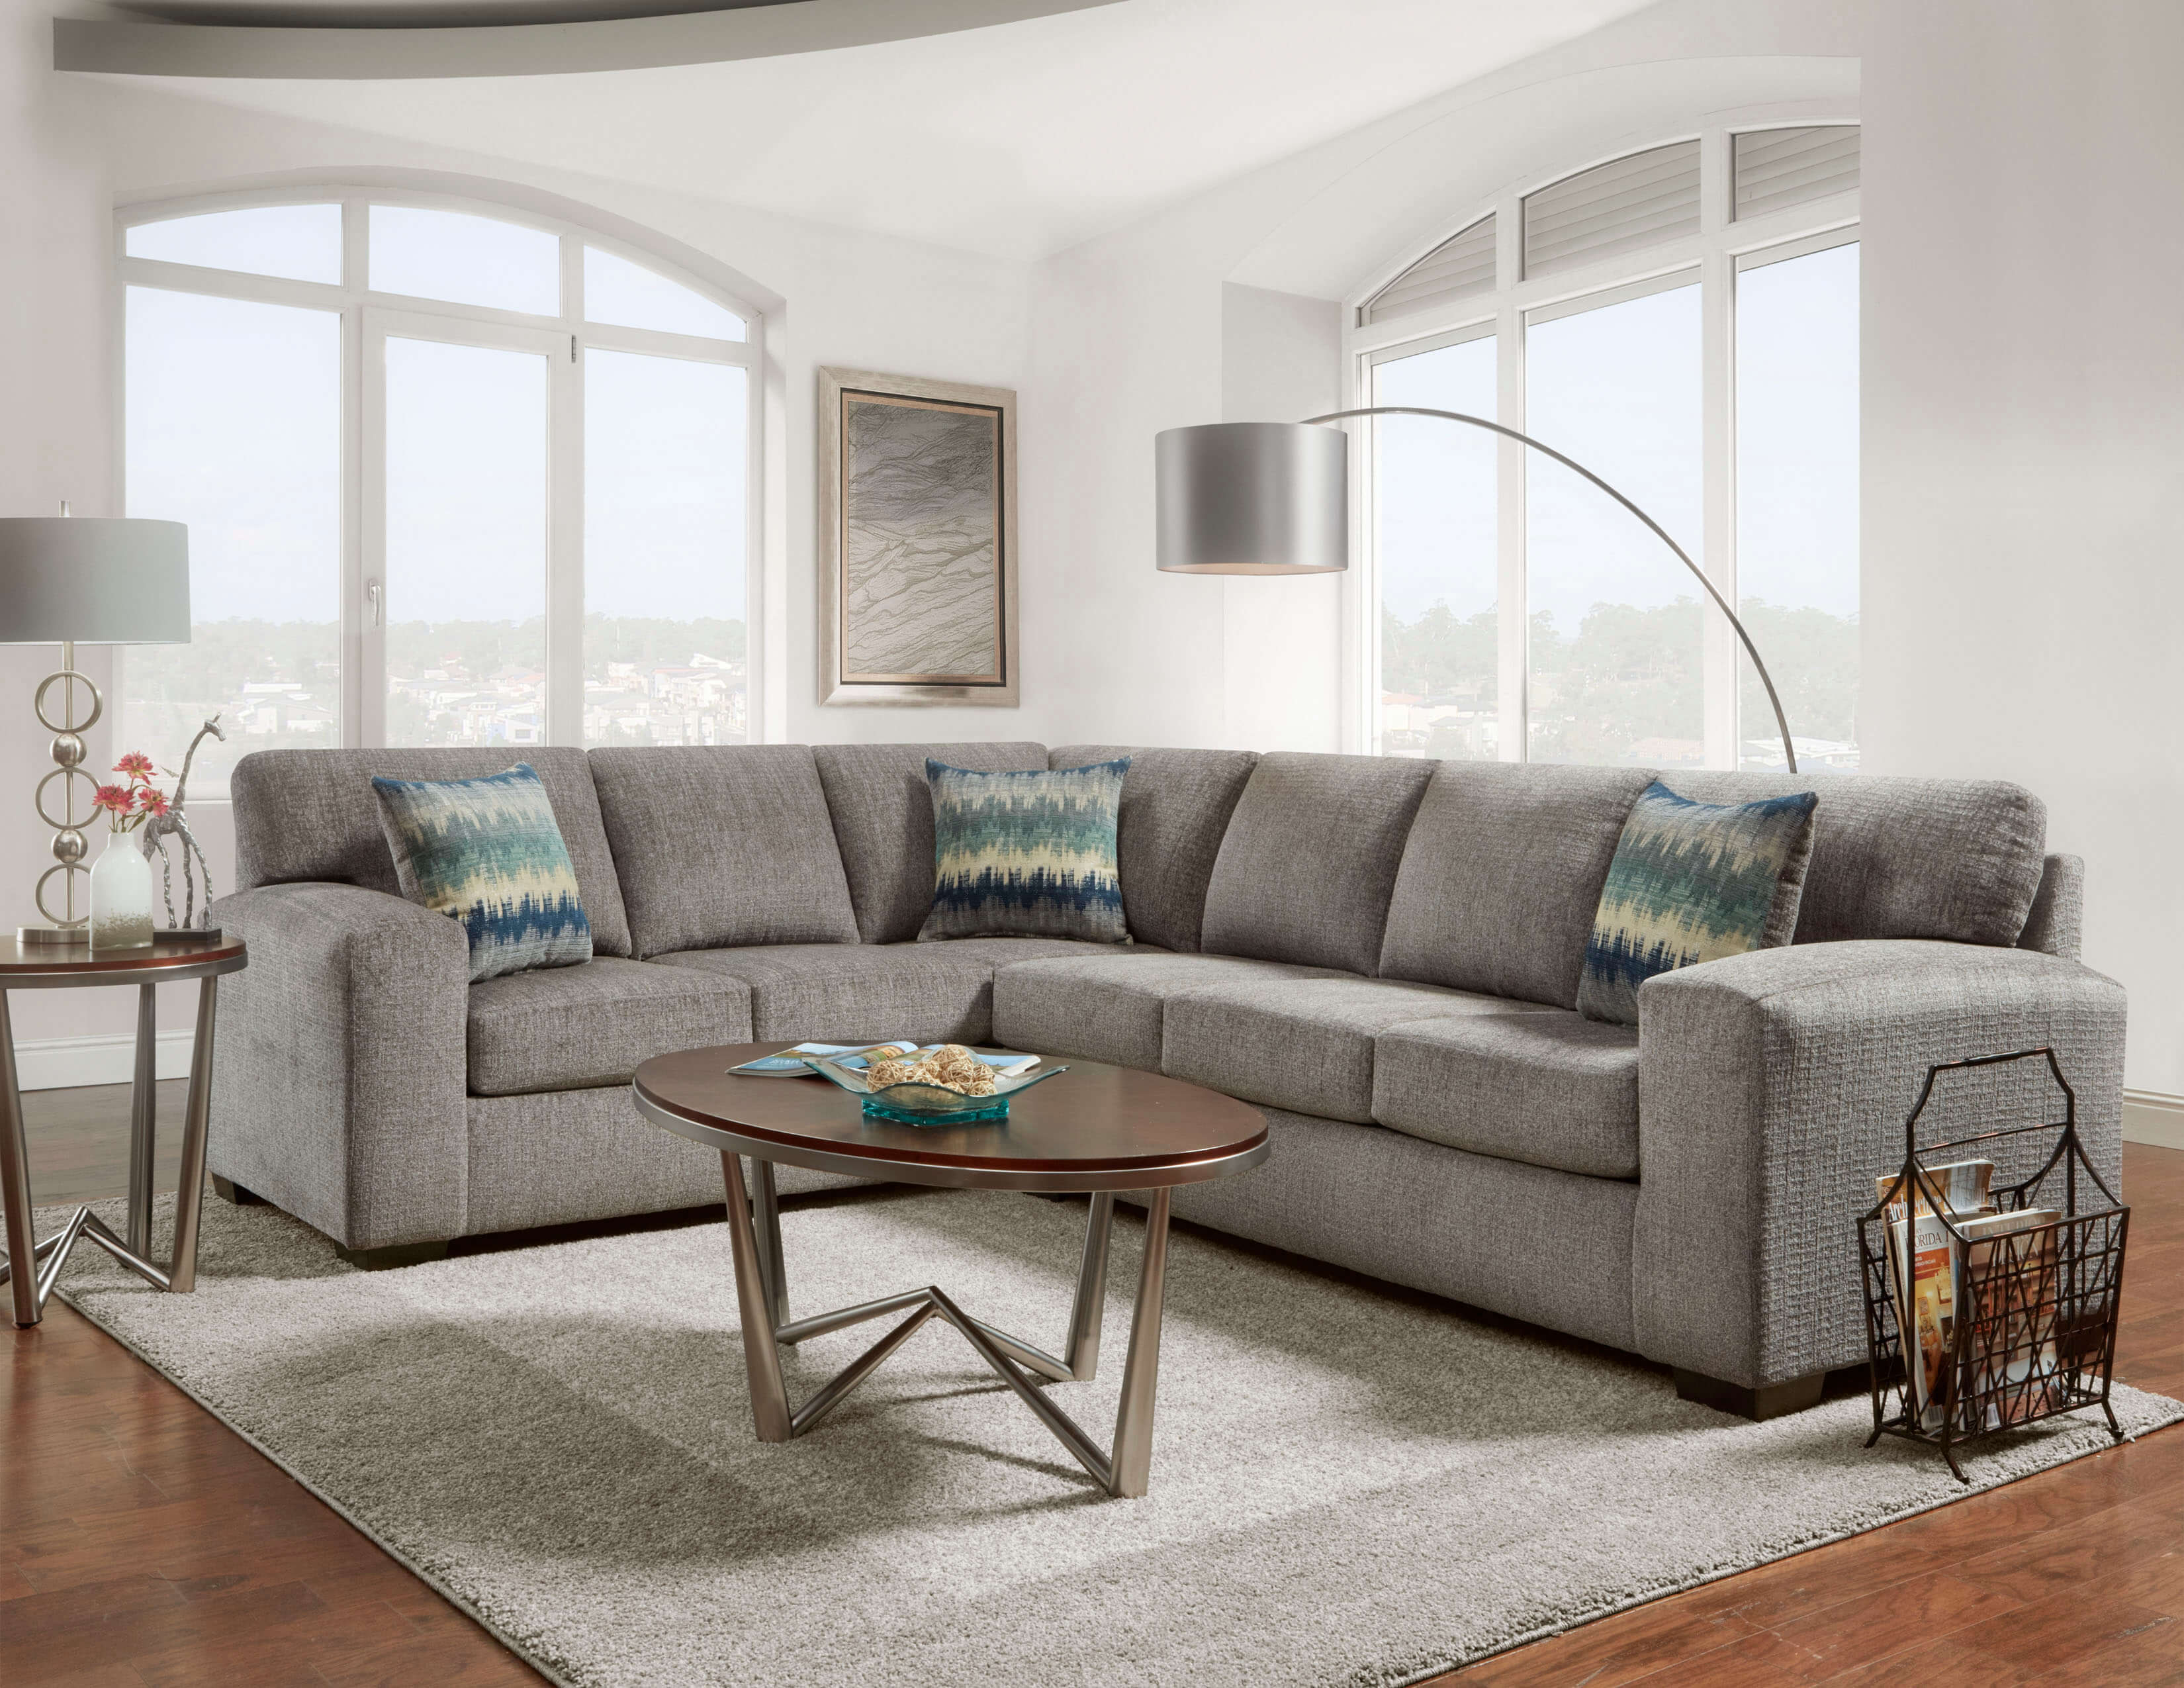 Affordable Furniture Silverton Pewter 2 Piece Sectional Sofa 5951 5952 Sandy Super